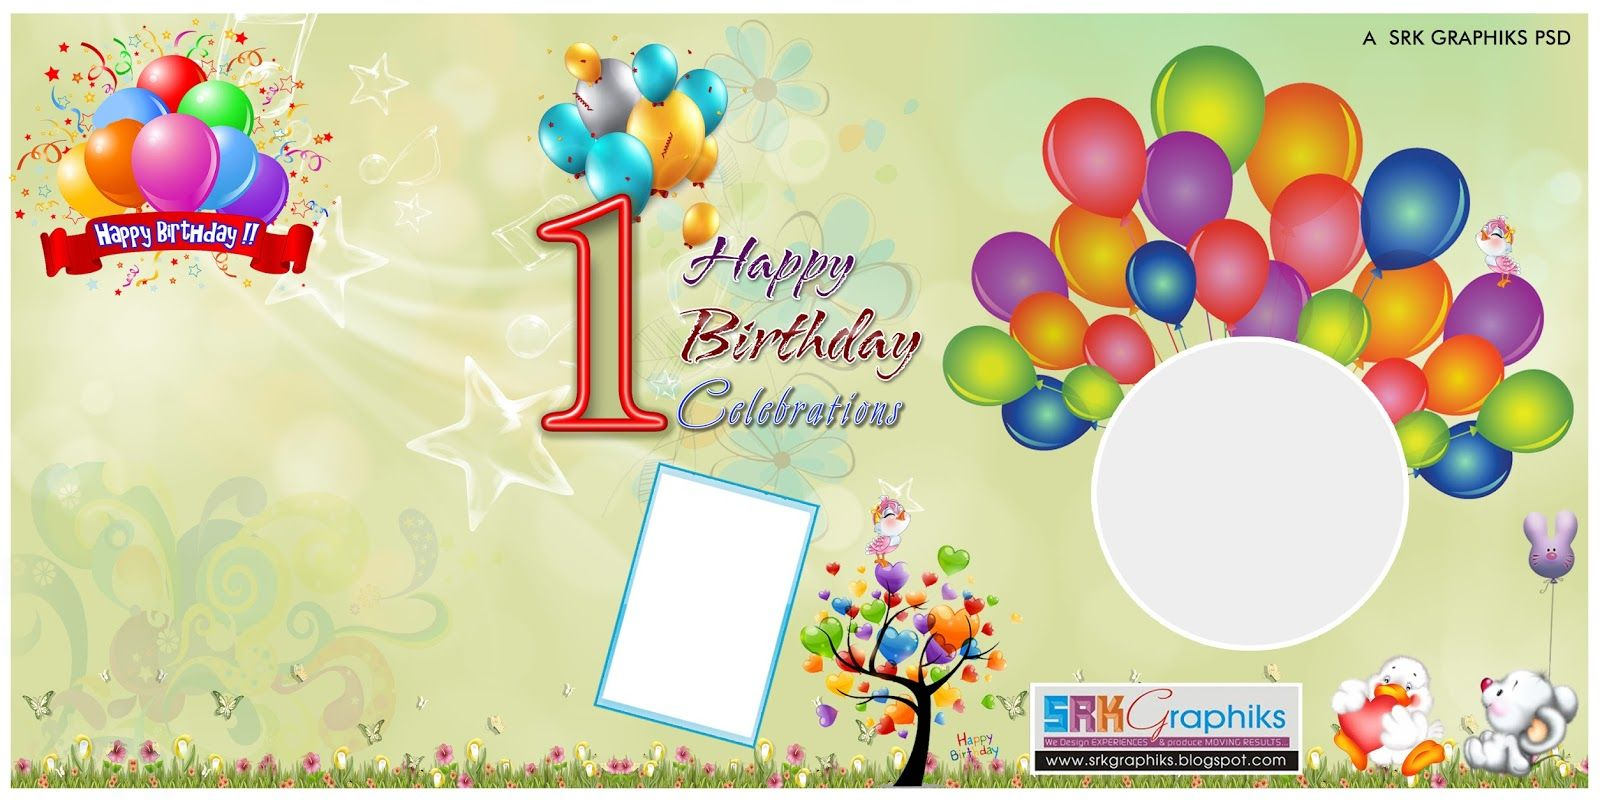 Birthday Banner Design Photoshop Template For Free Birthday